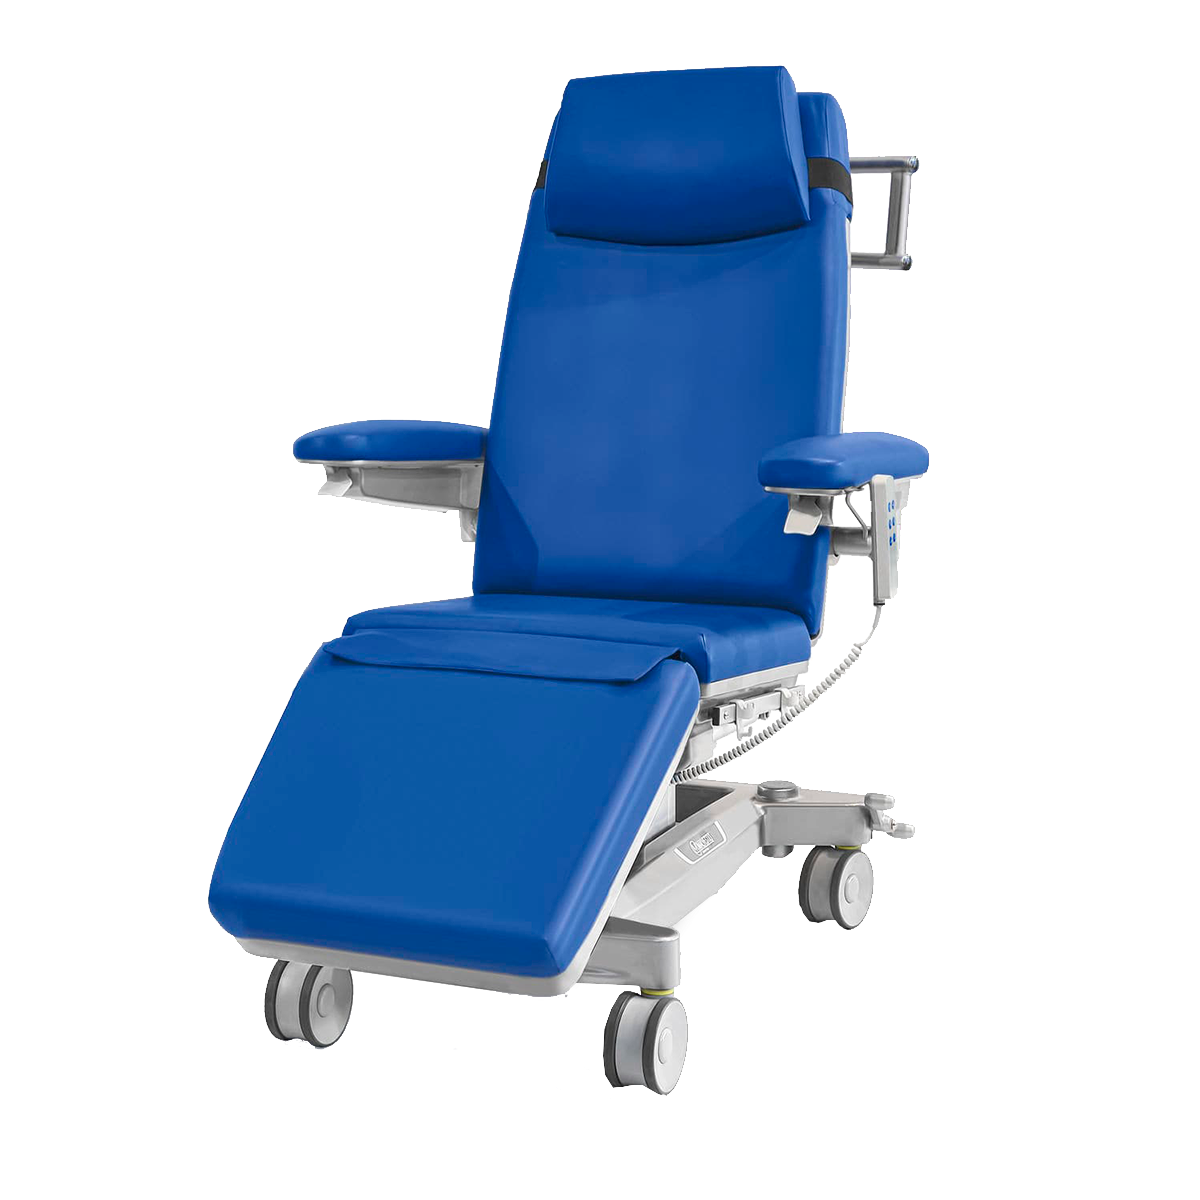 Fixed Treatment Chair